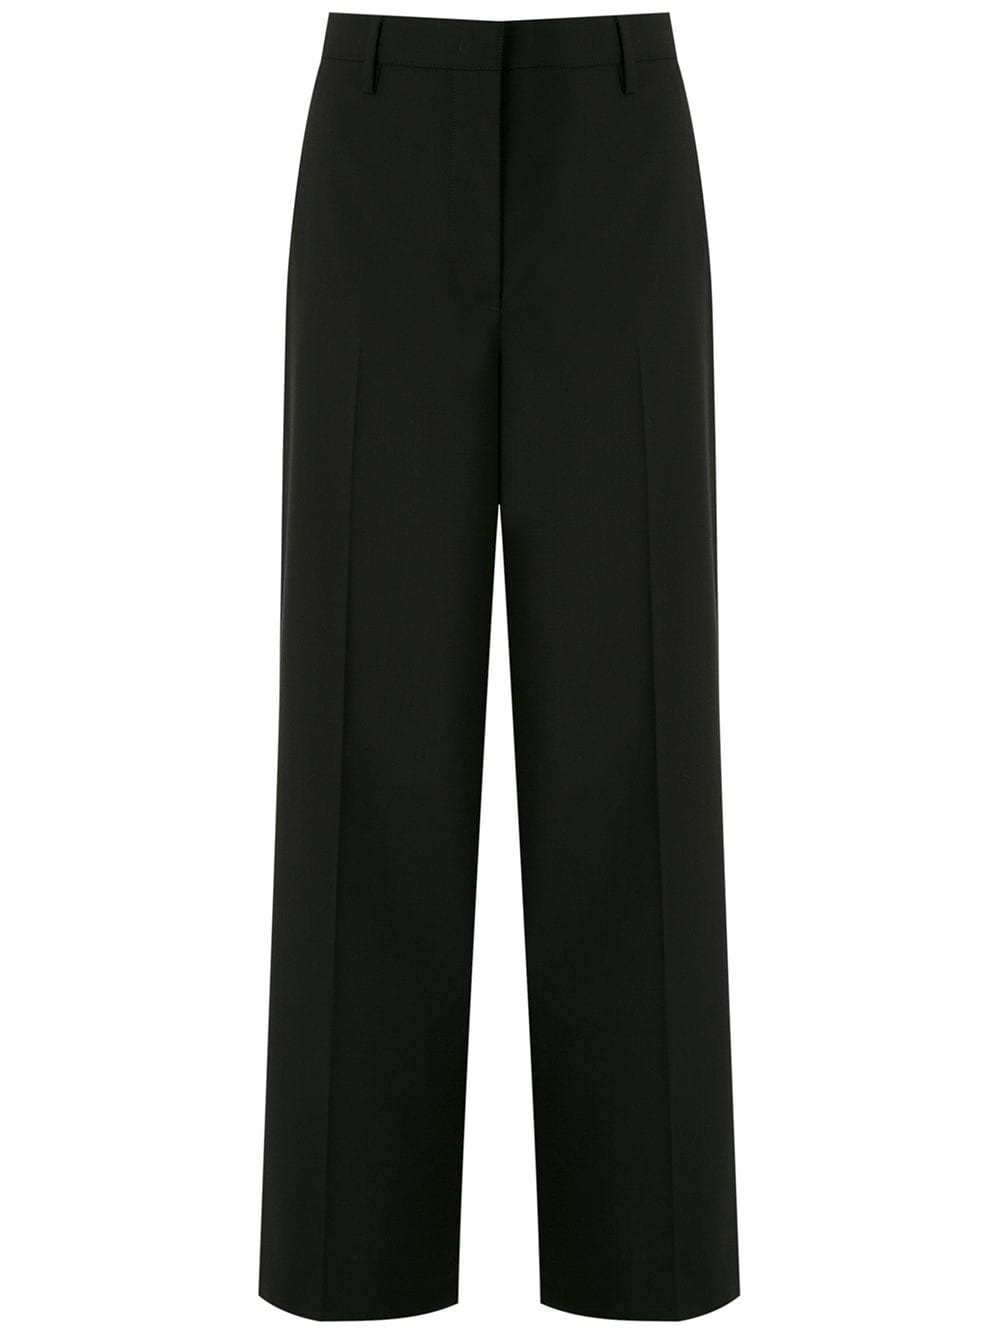 Prada straight leg cropped trousers - Black von Prada